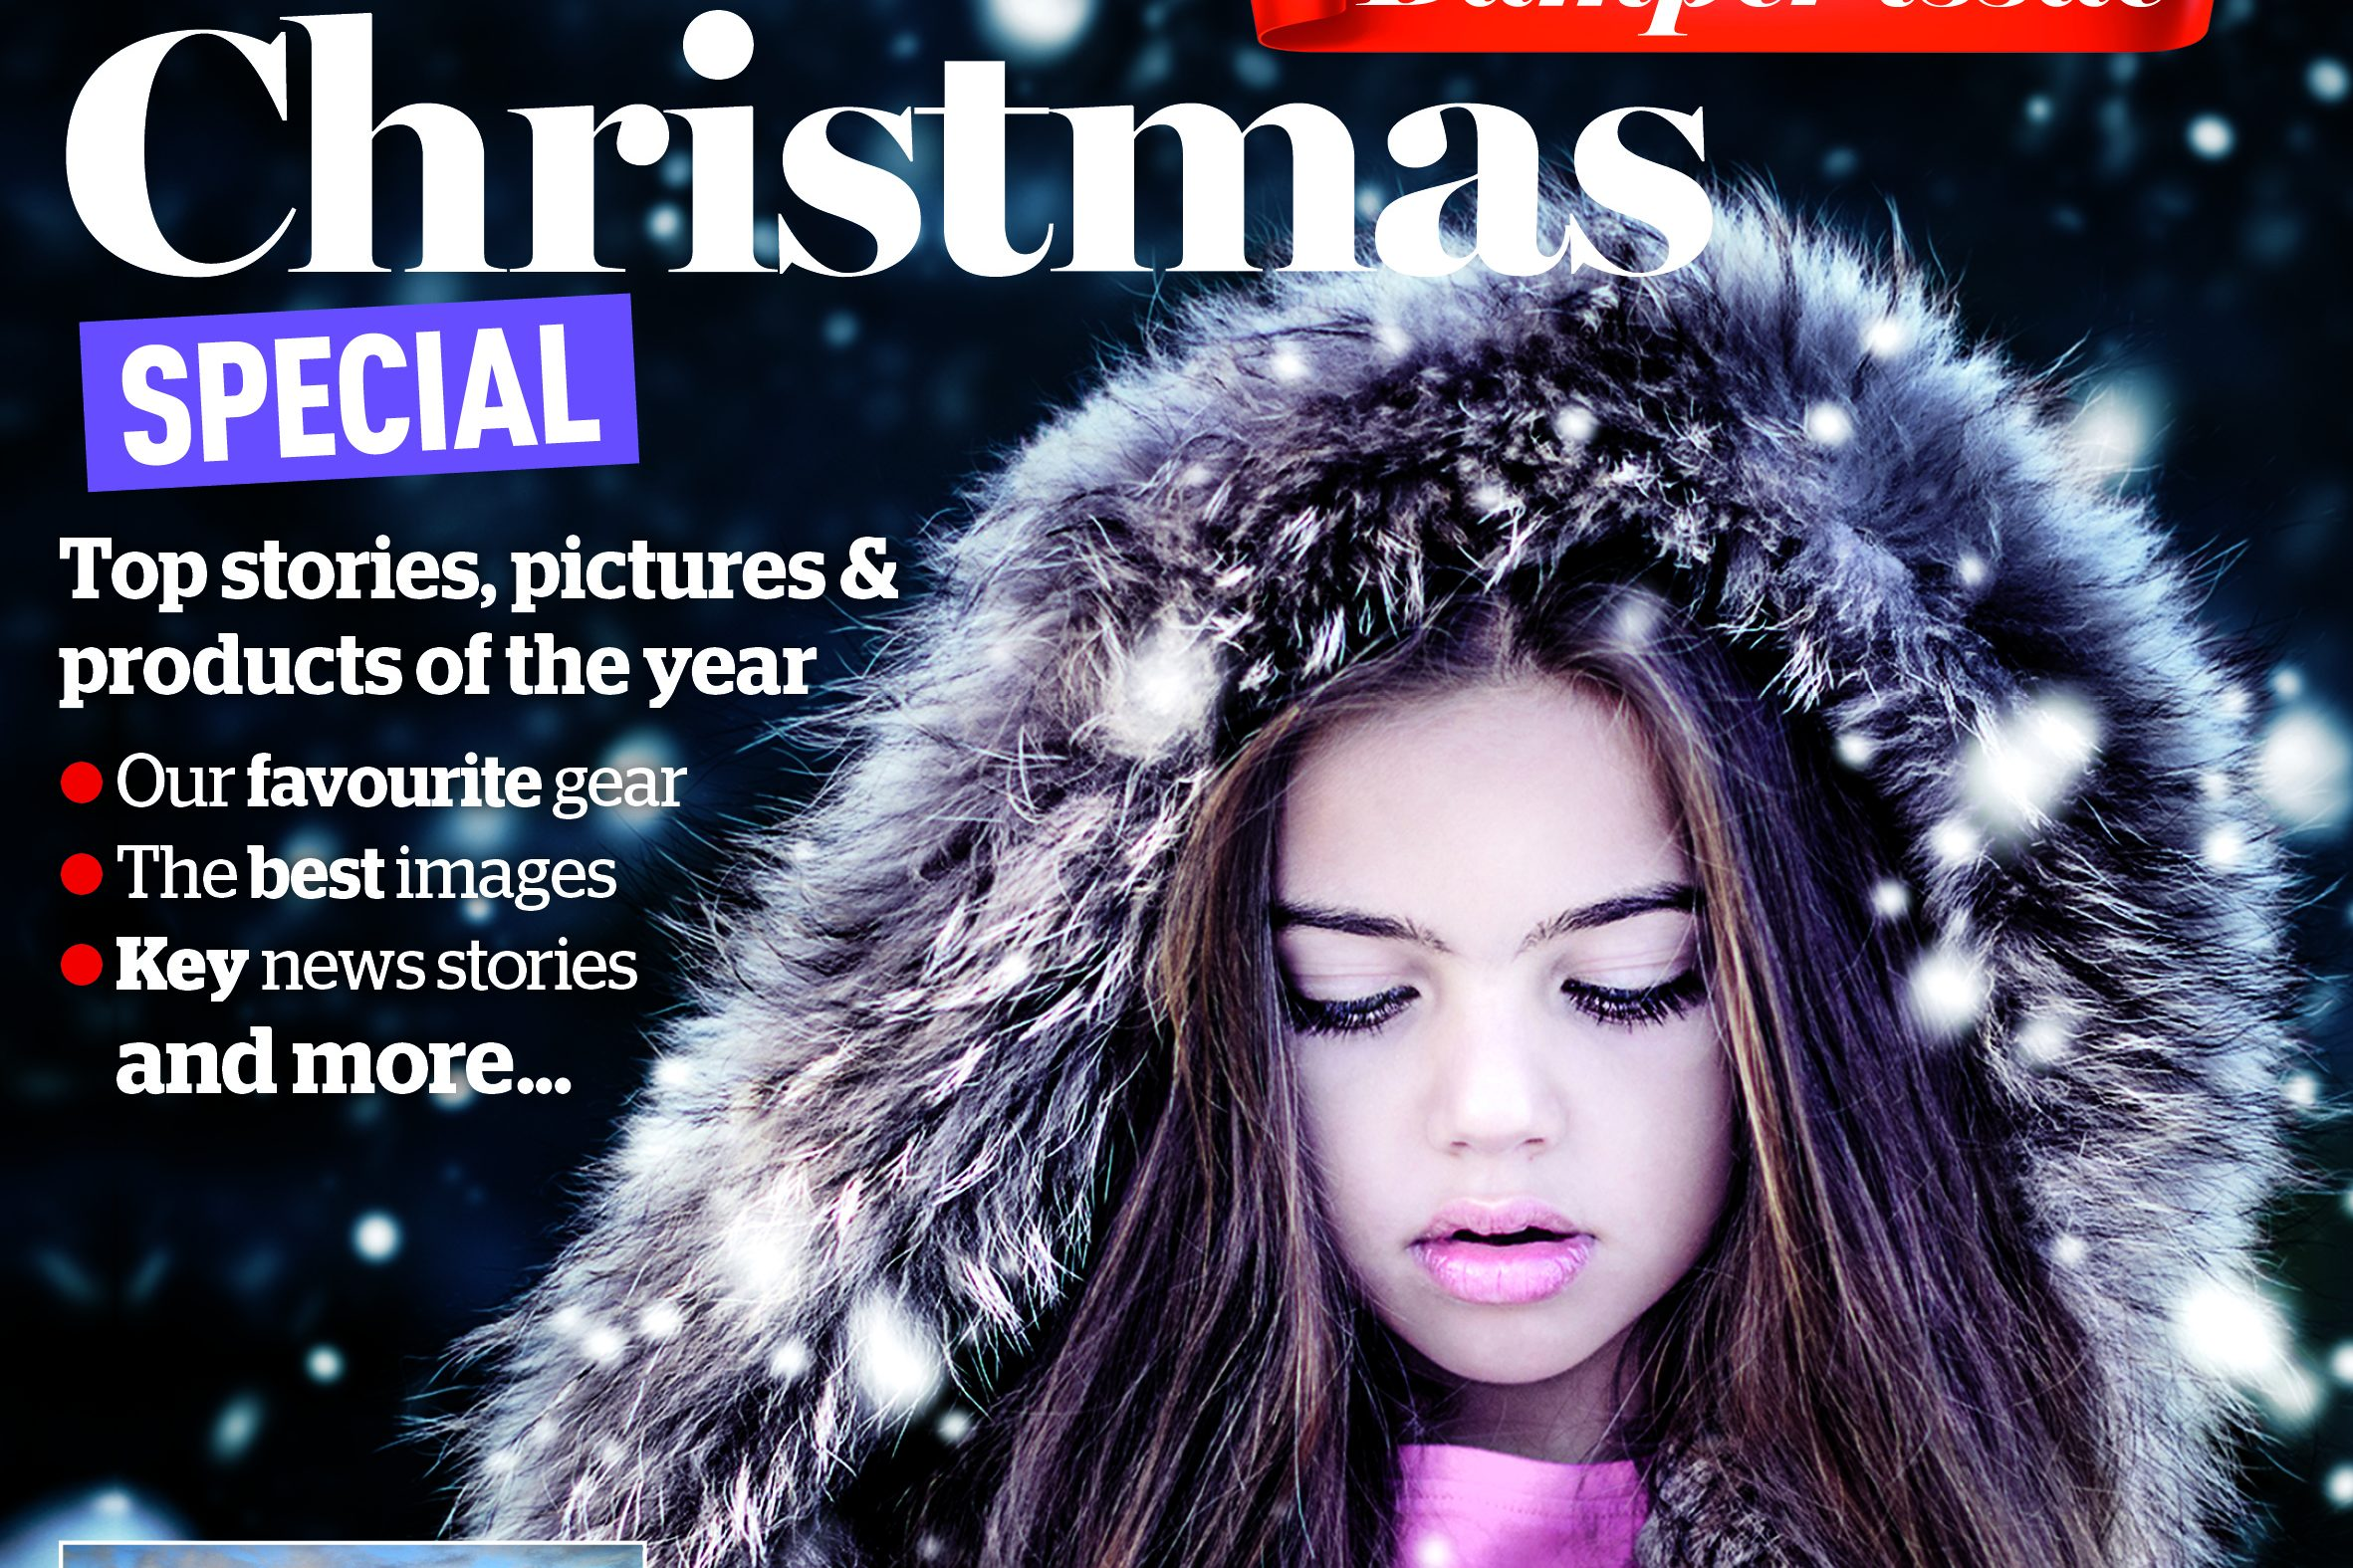 Christmas Cover Star: Do you want your photo on the cover of Amateur Photographer?